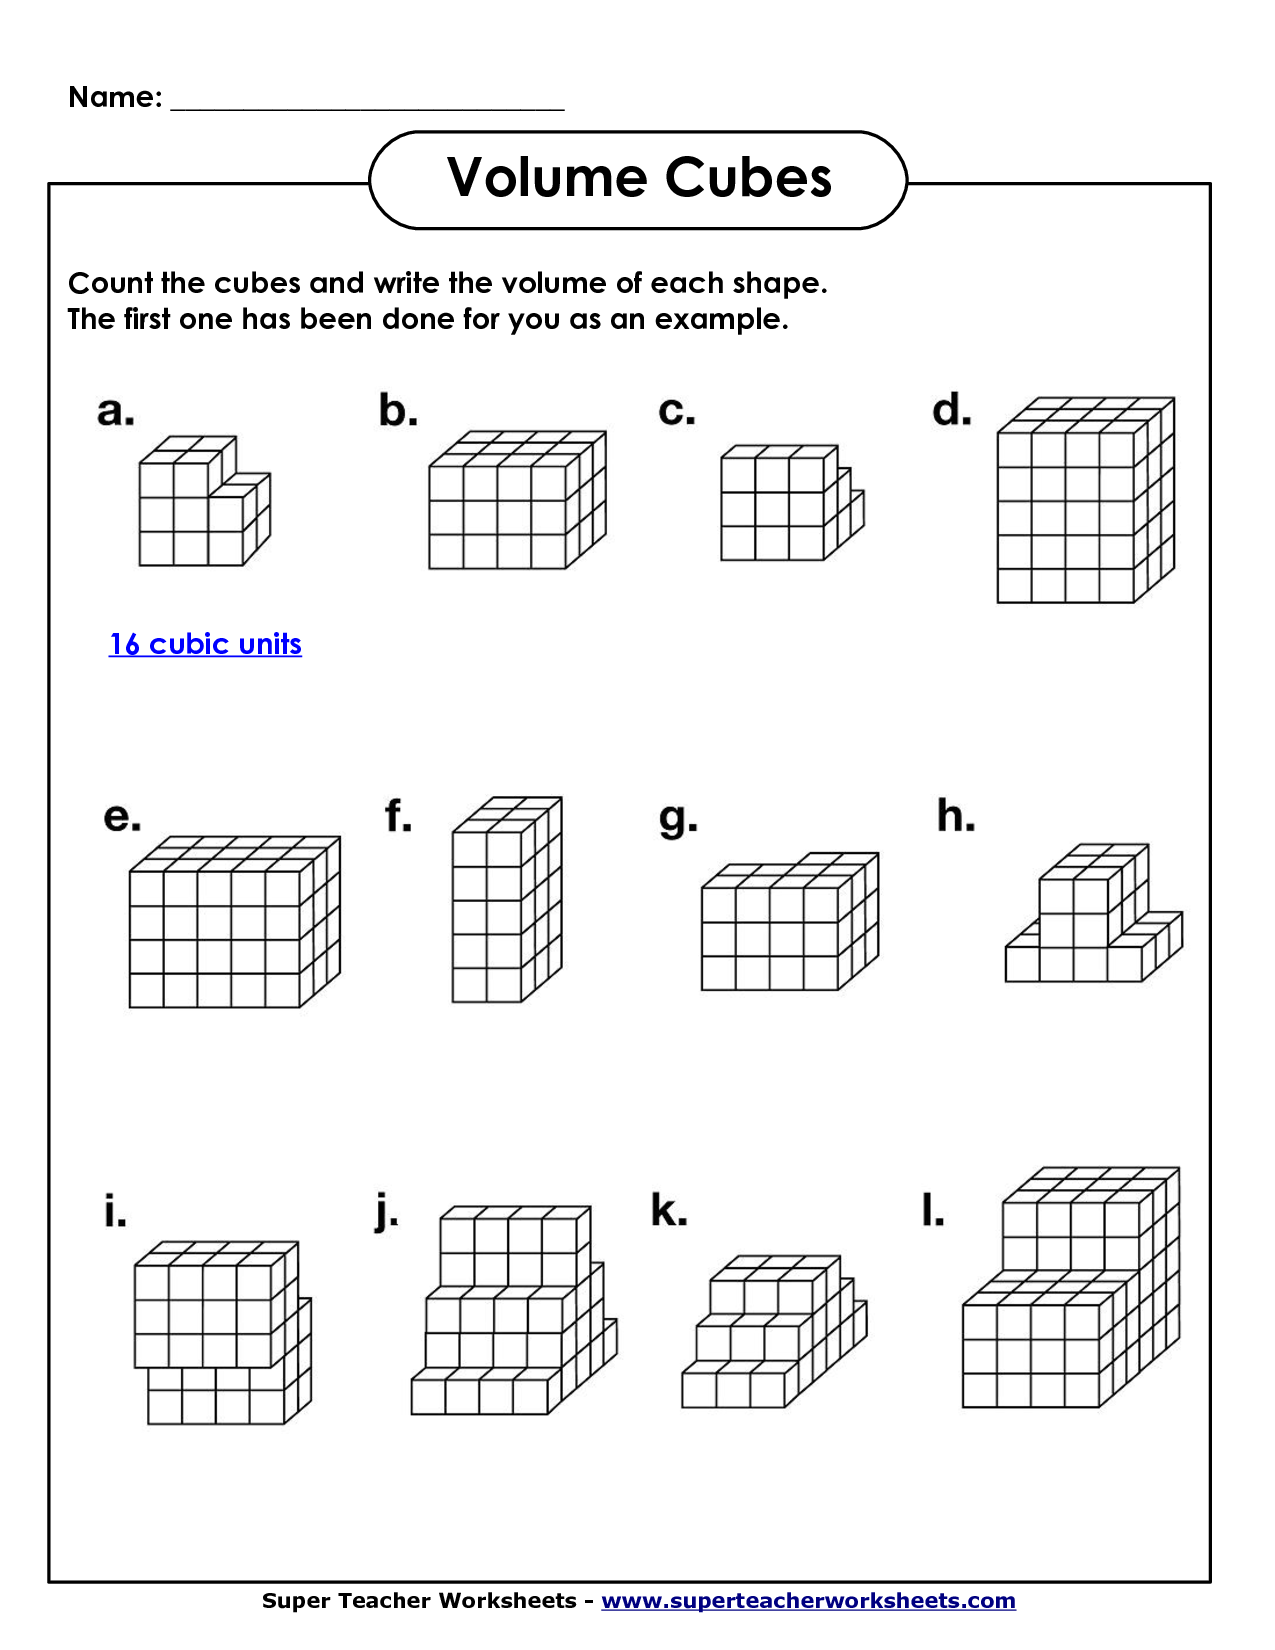 Worksheets Finding Volume Worksheets volume geometry with cubic units pdf math worksheets pdf